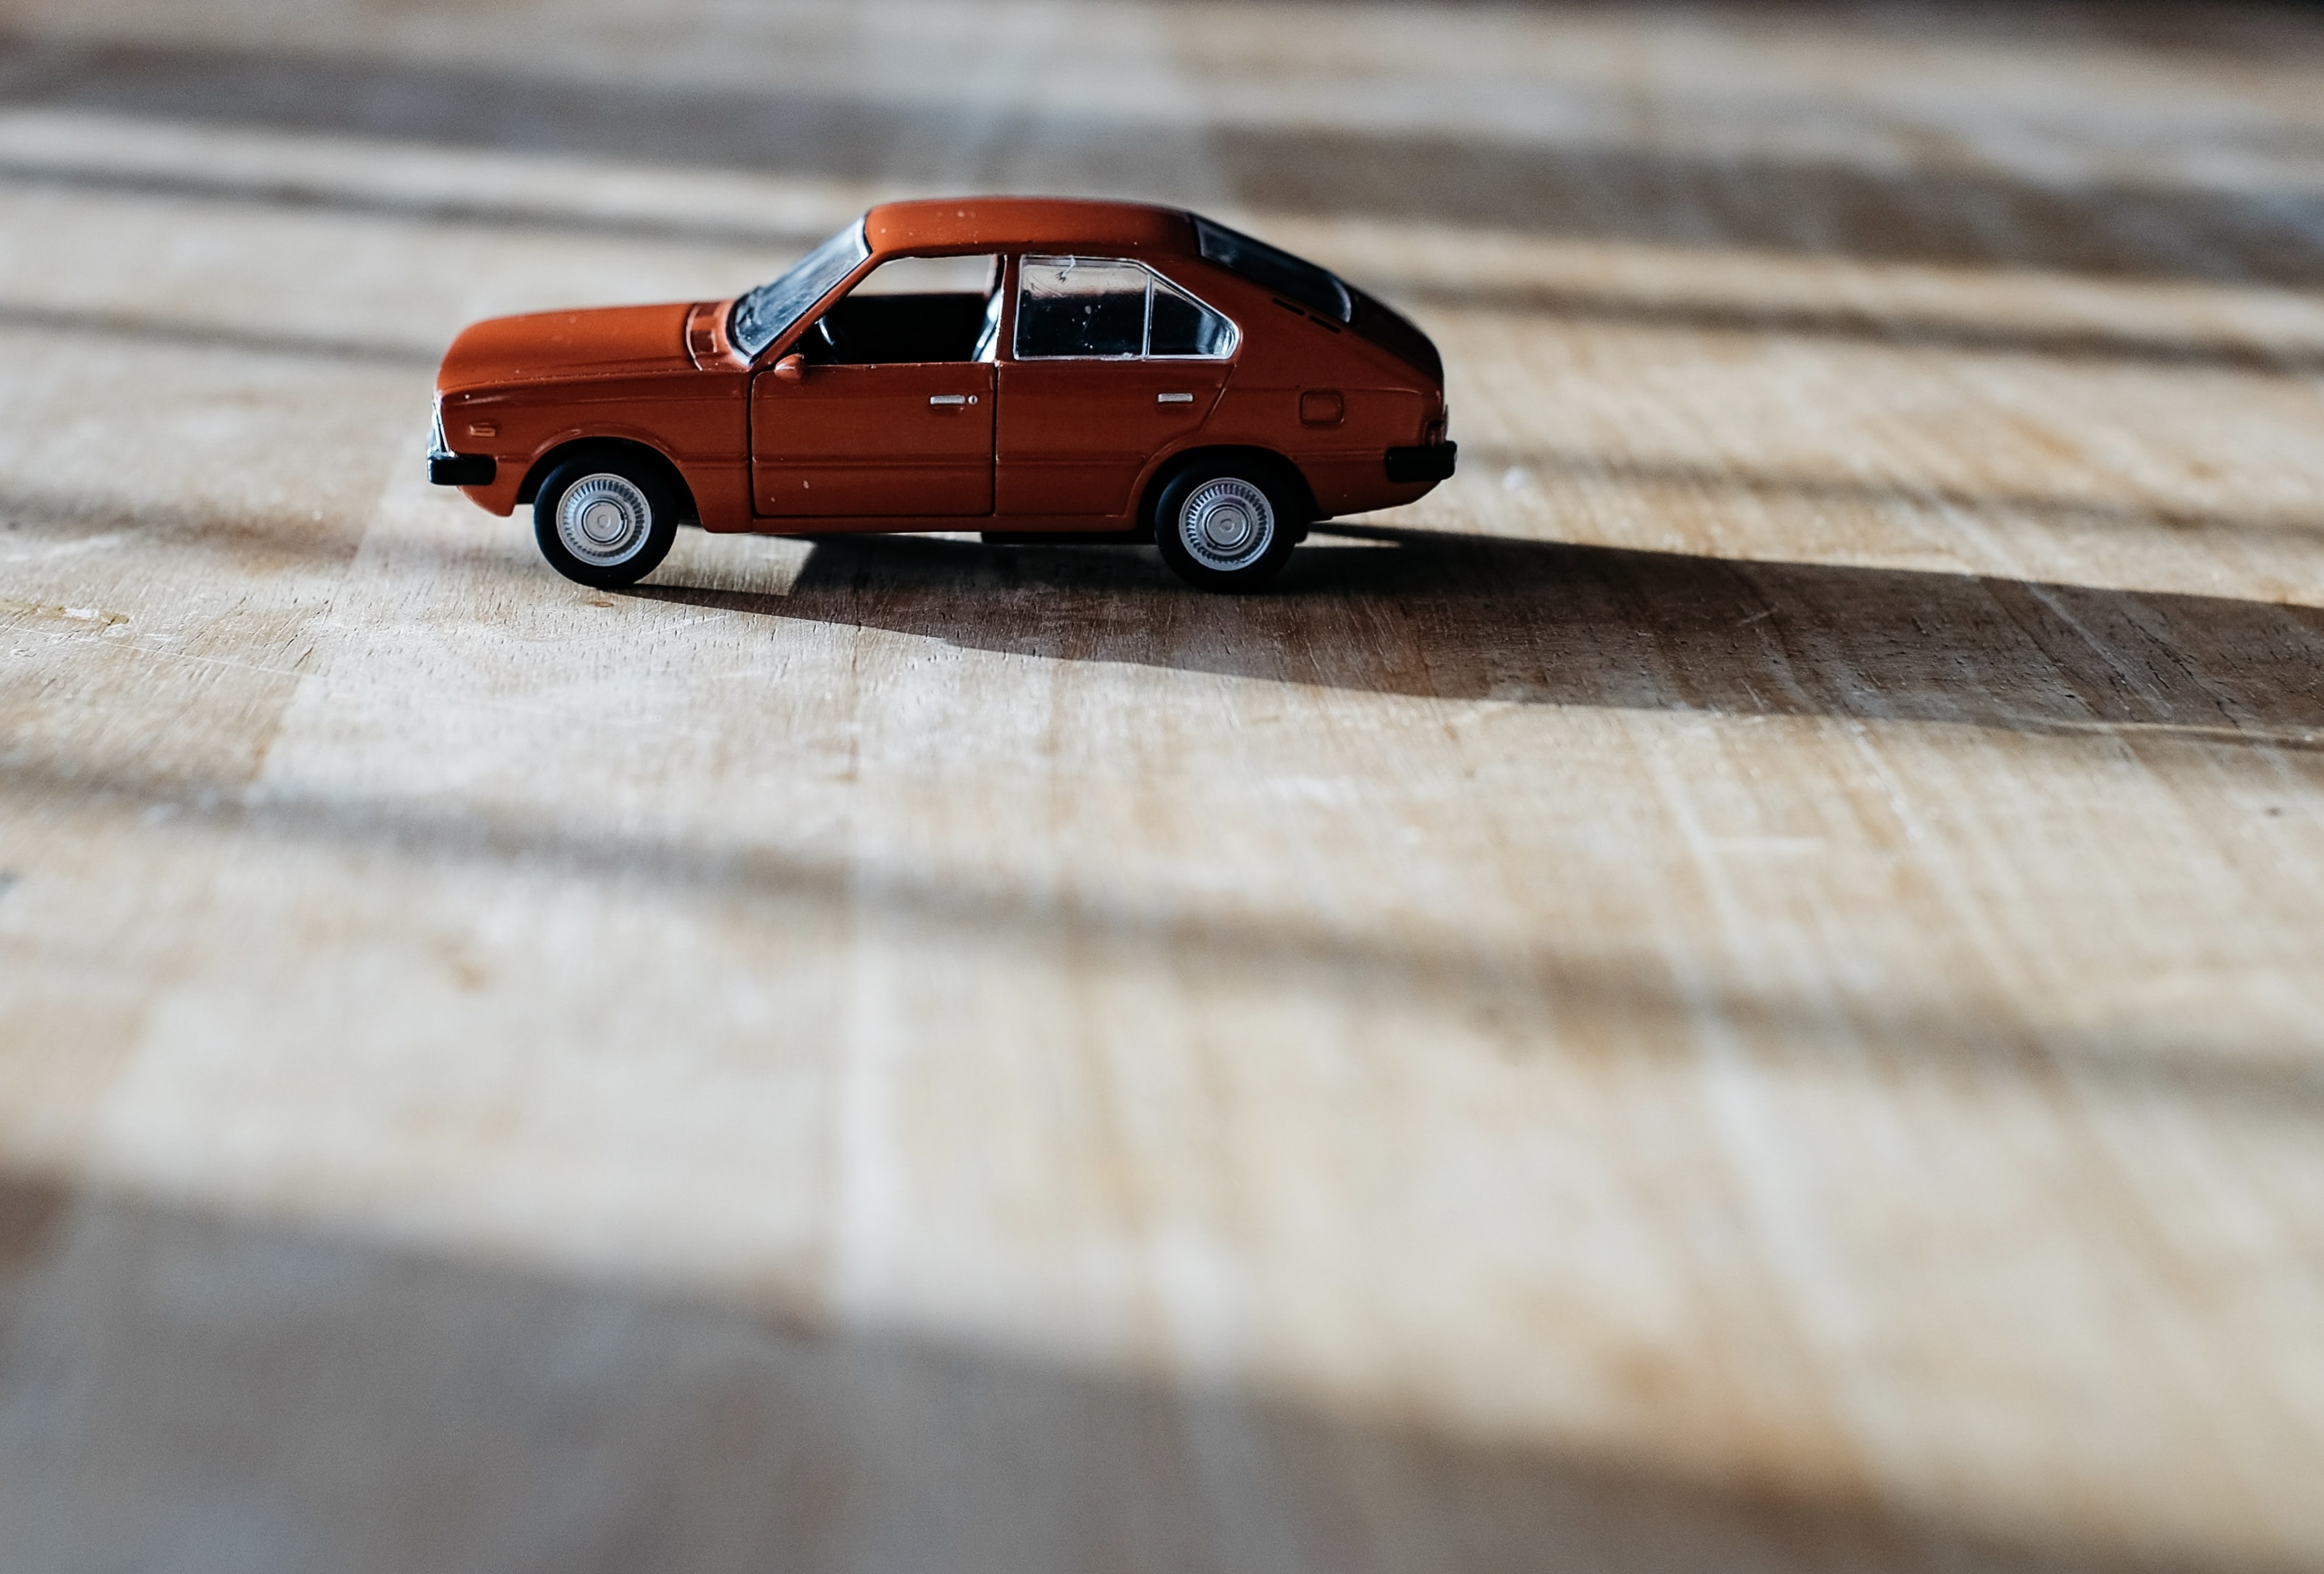 red 5-door hatchback vehicle scale model on top of brown surface